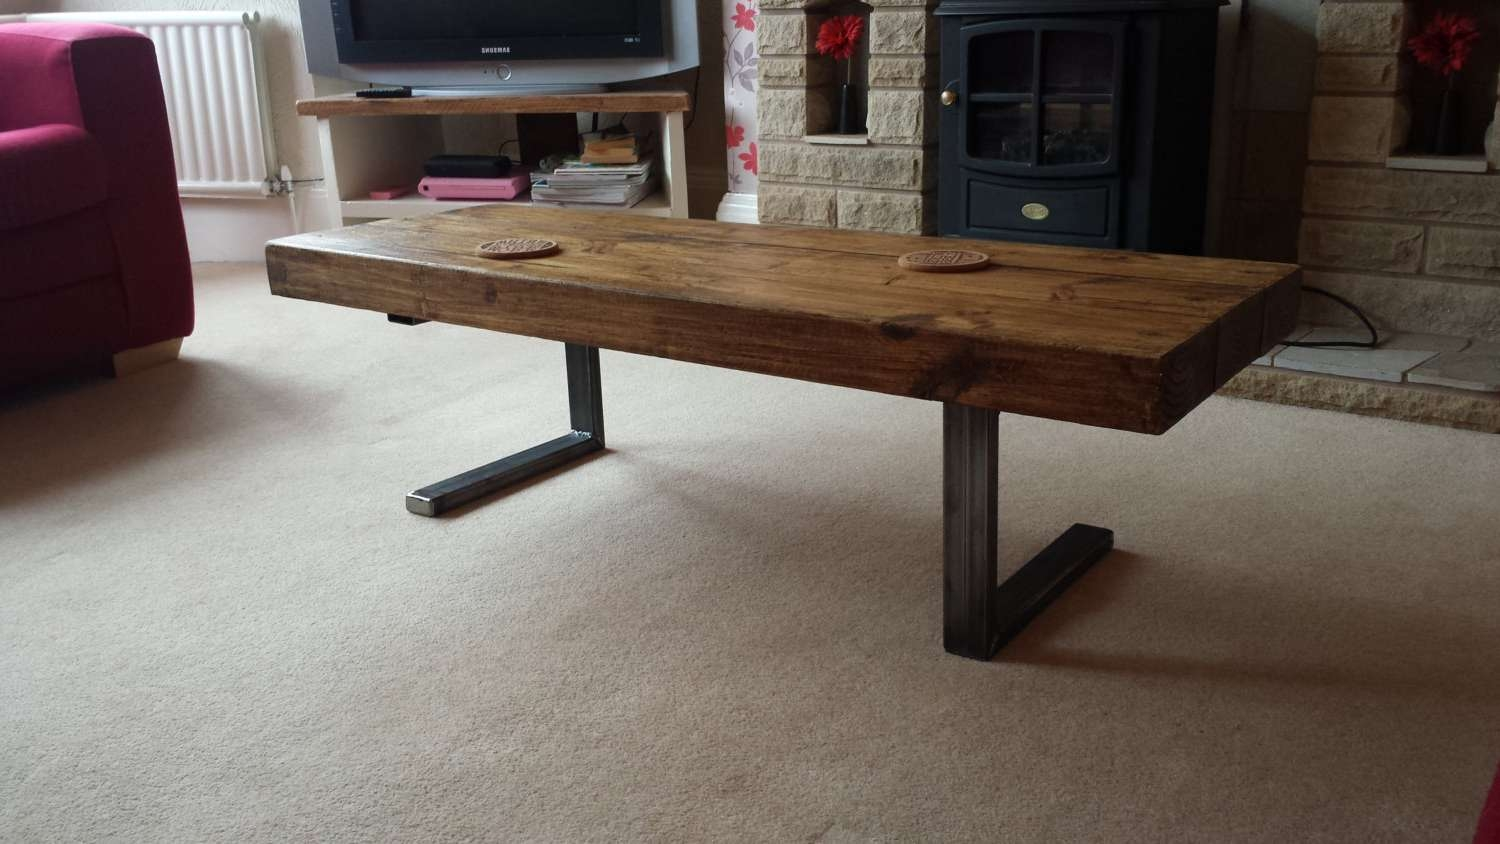 Well Liked Chunky Coffee Tables Inside Coffee Table In Chunky Rustic Design With Steel L Shaped Legs (View 20 of 20)